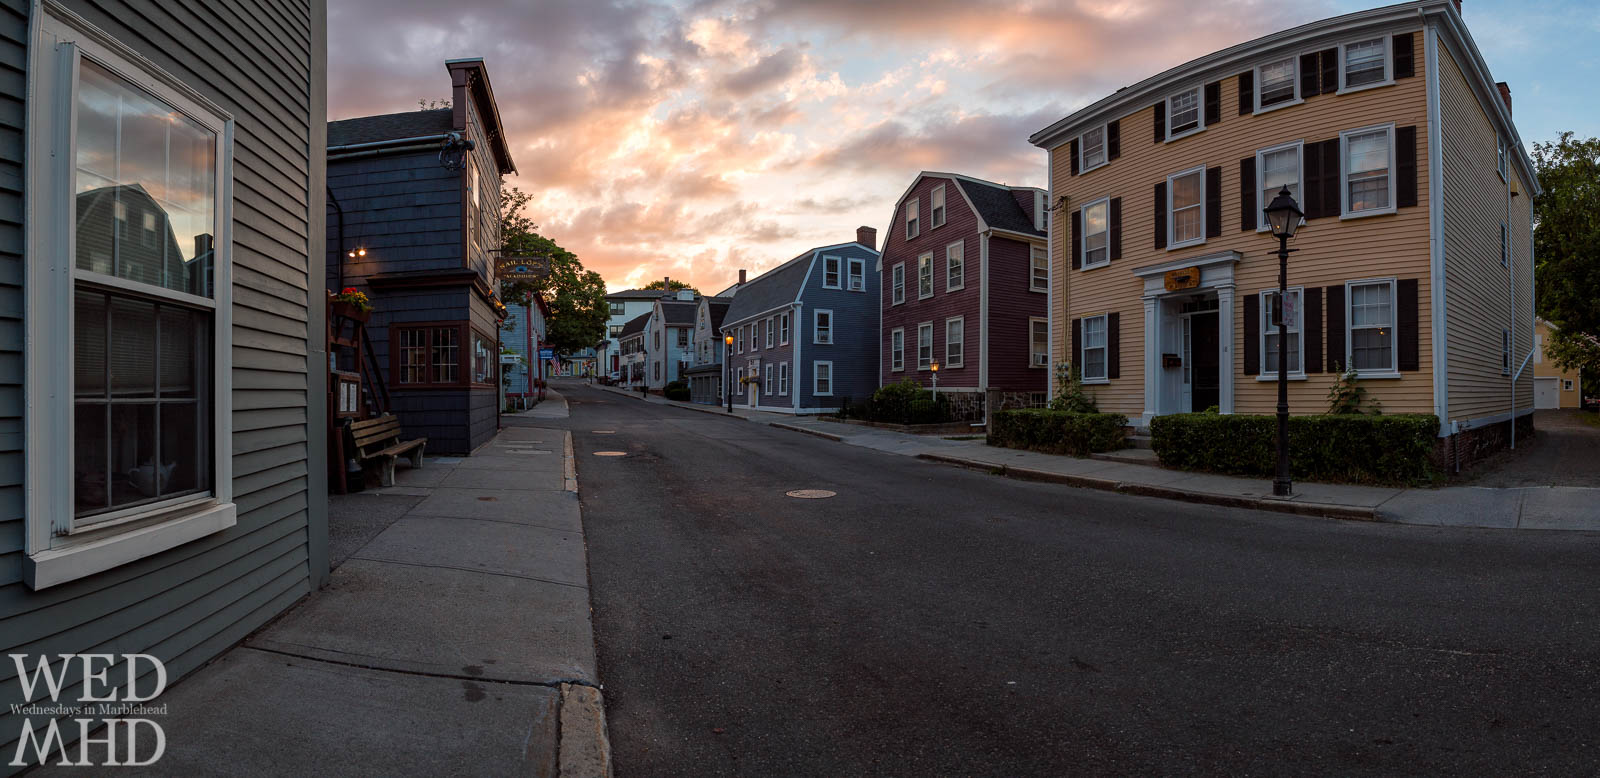 Sunset light paints the houses of State Street in a soft glow on this June evening